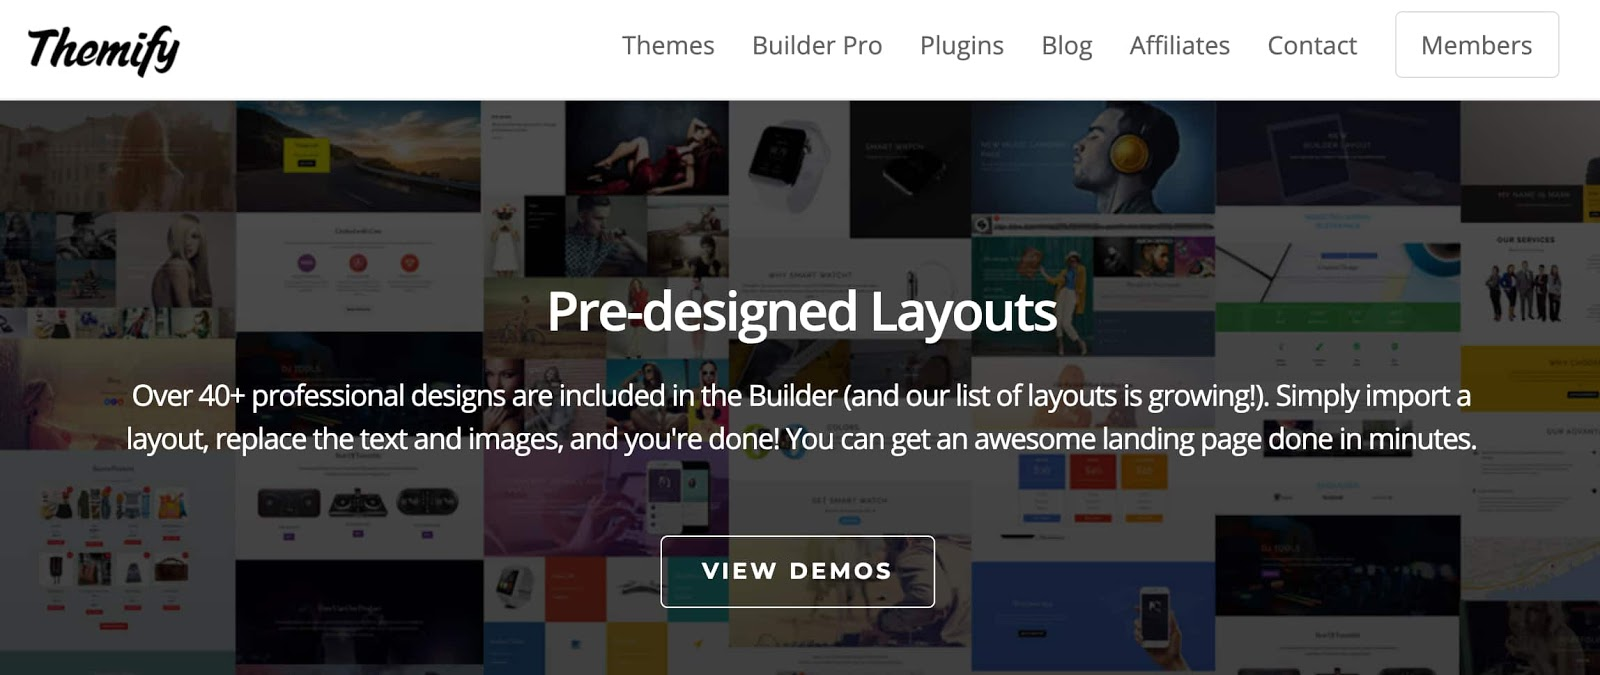 homepage for the WordPress page builder Themify